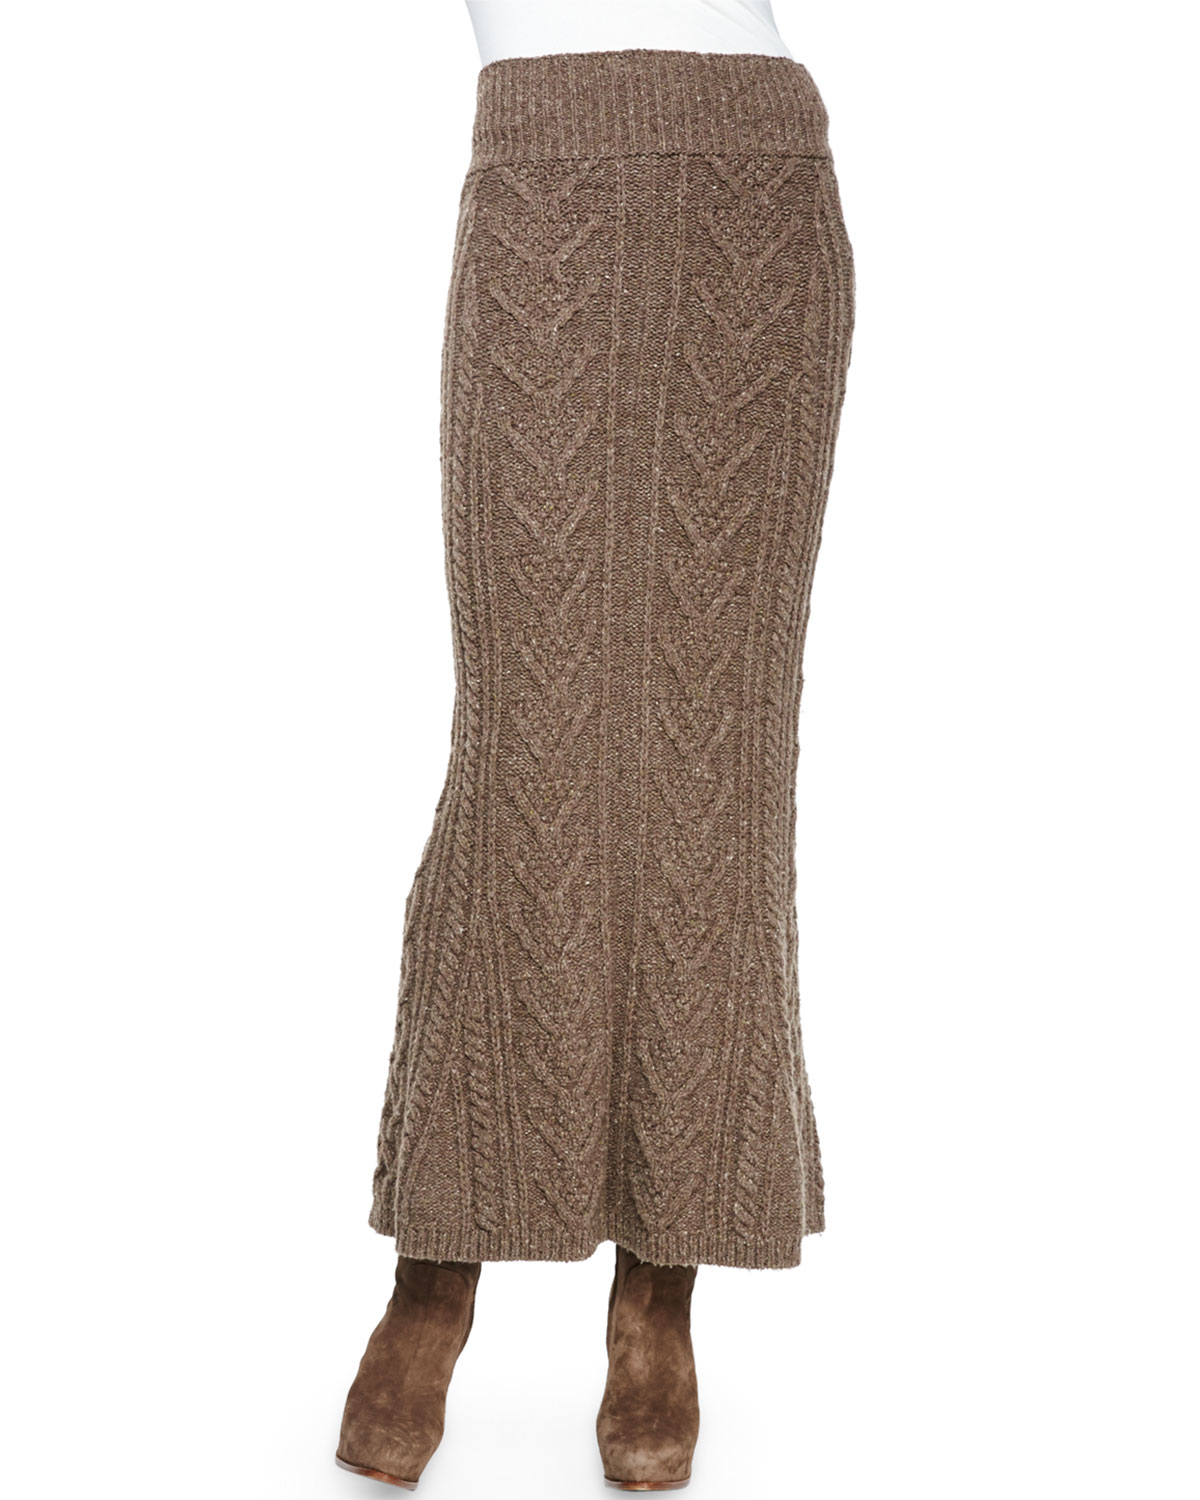 Ralph lauren collection Long Cable-Knit Cashmere Skirt in Brown | Lyst